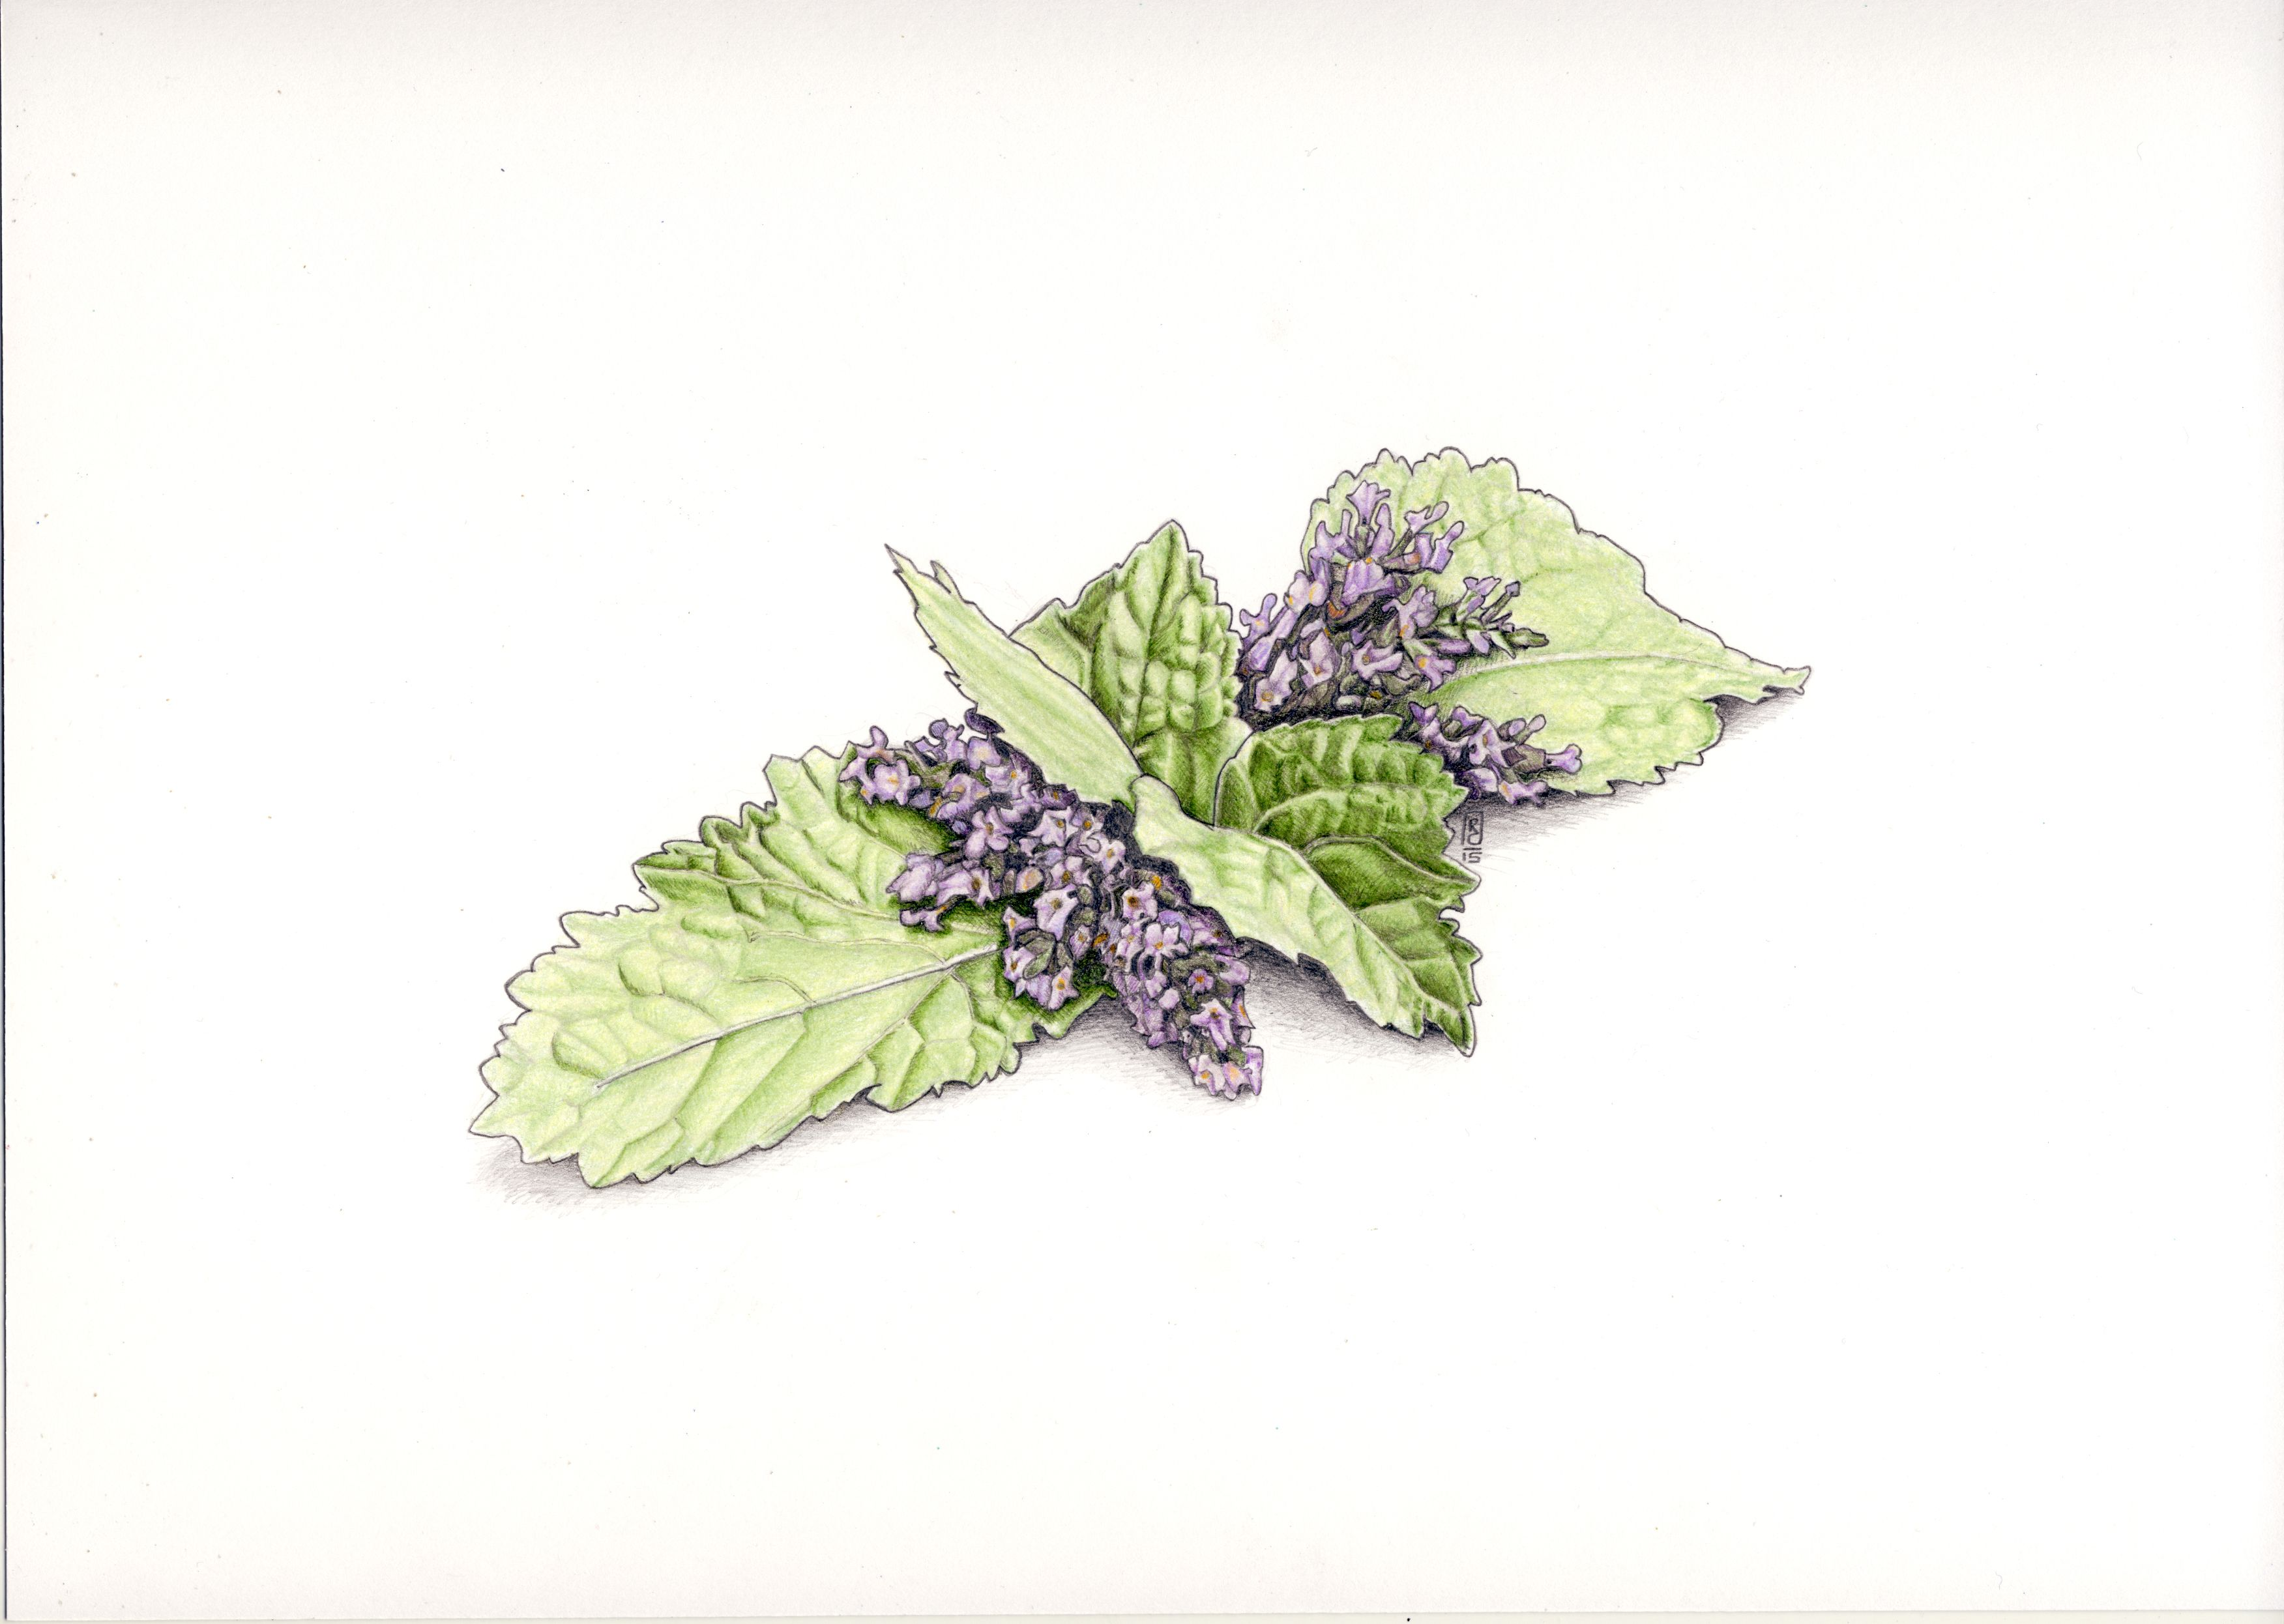 Patchouli Leaves and Flowers in colored pencil and graphite by Robert Ciampa Illustration www.ciampa-illustration.com